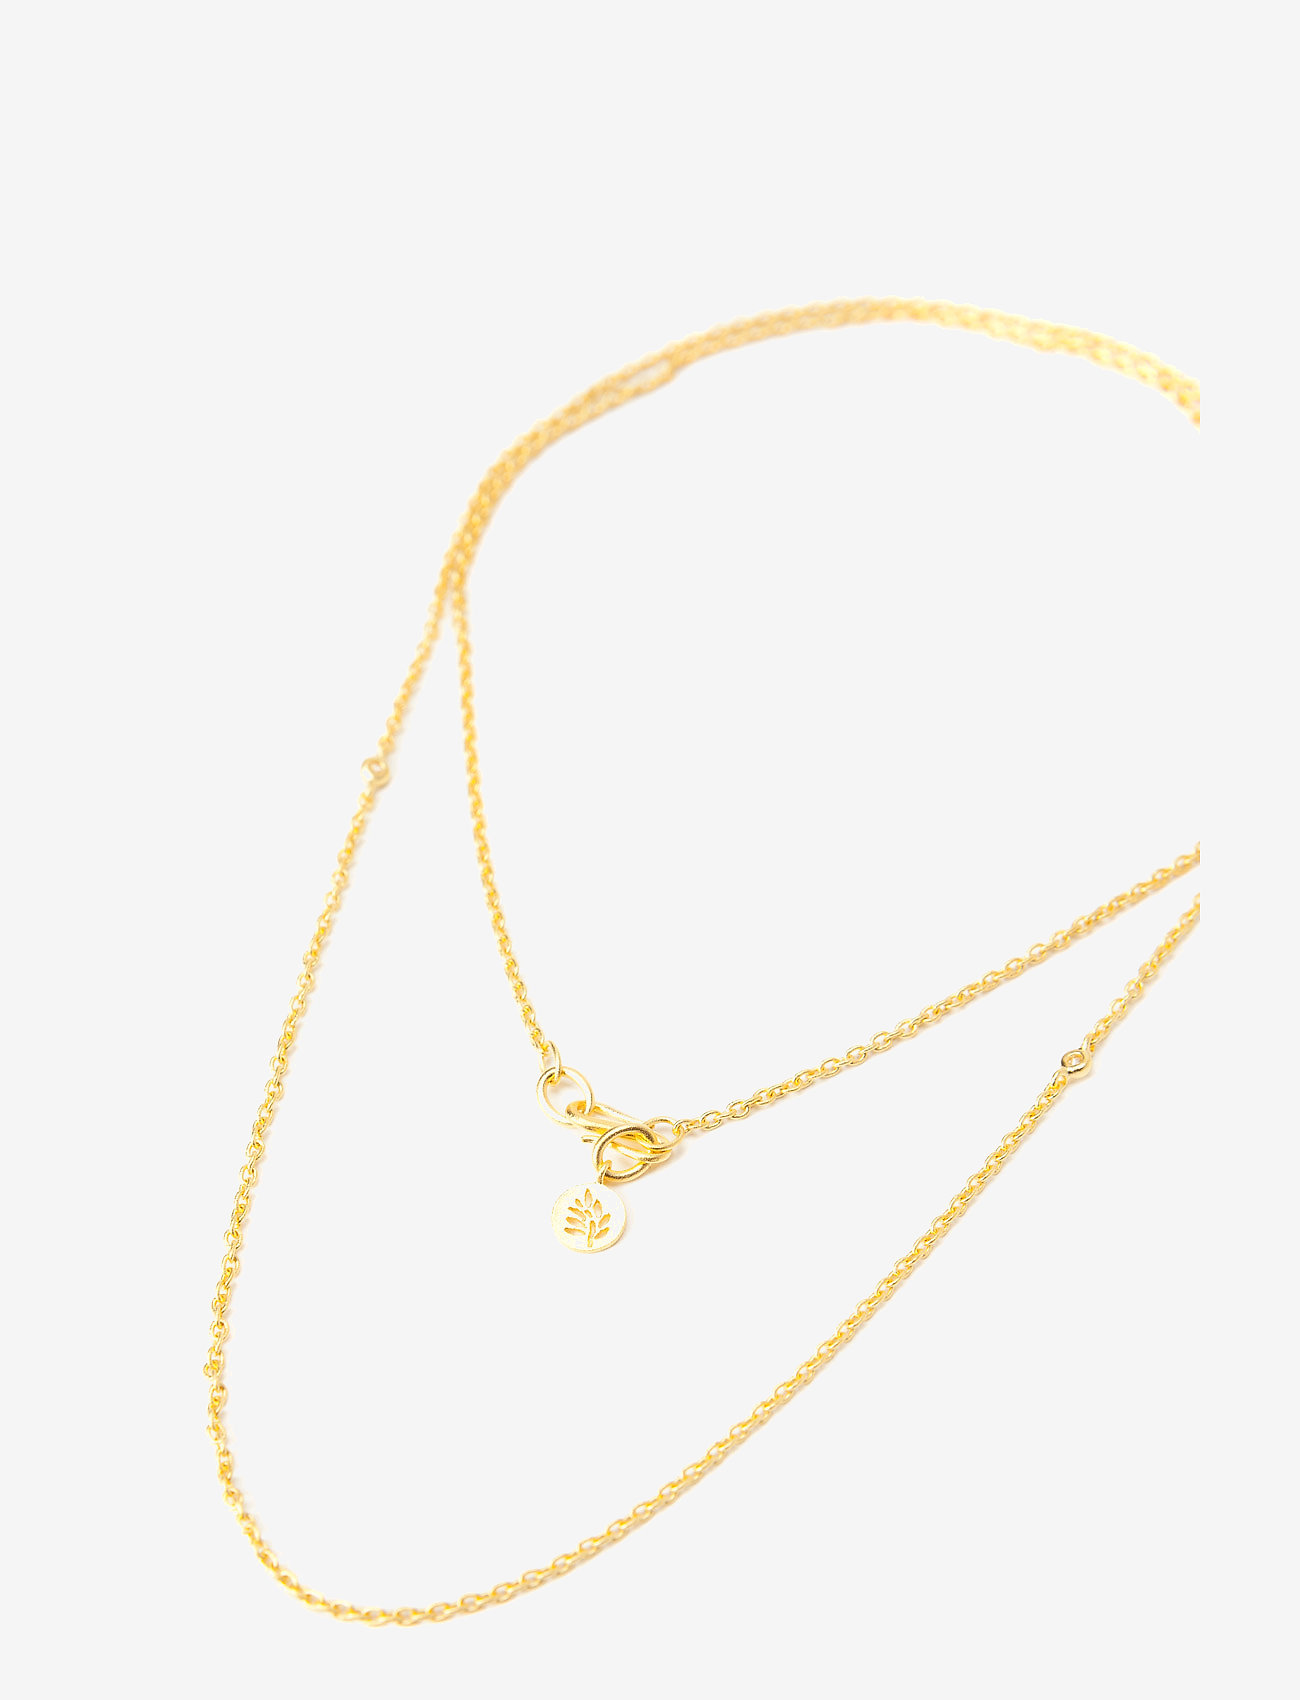 Julie Sandlau Necklace Gold - Smycken